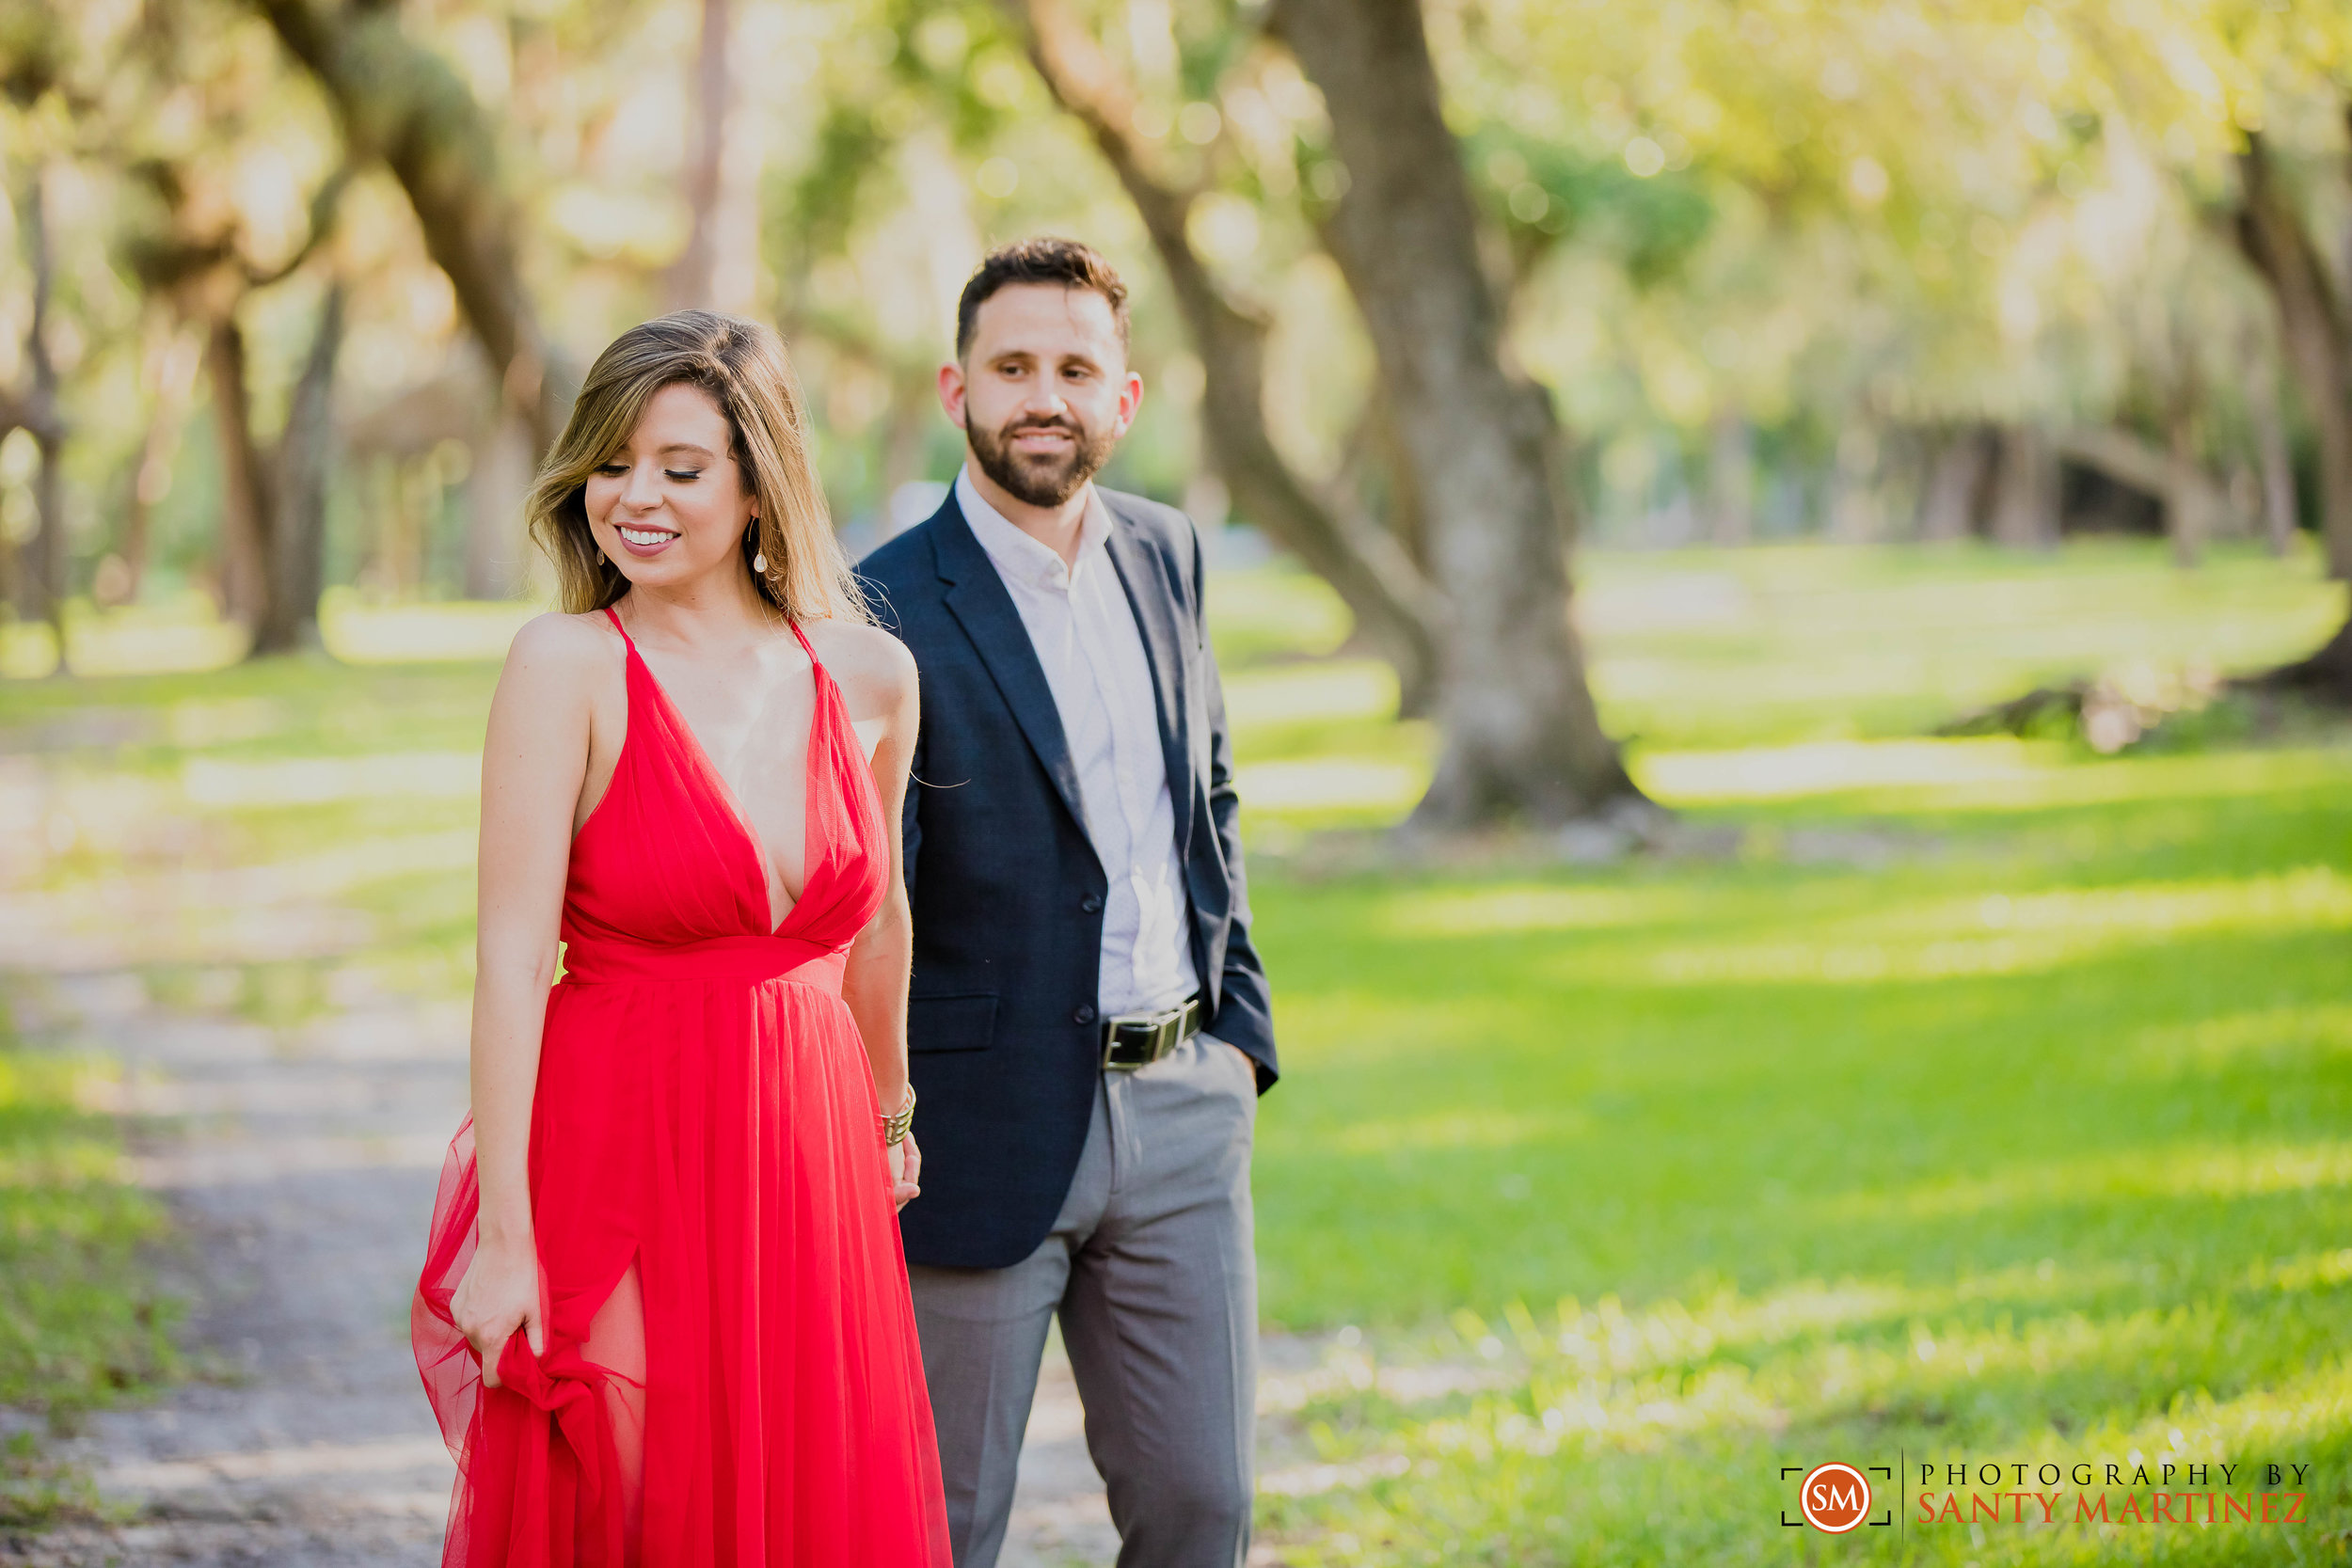 Engagement Session - Matheson Hammock Park - Santy Martinez Wedding Photographer-10.jpg